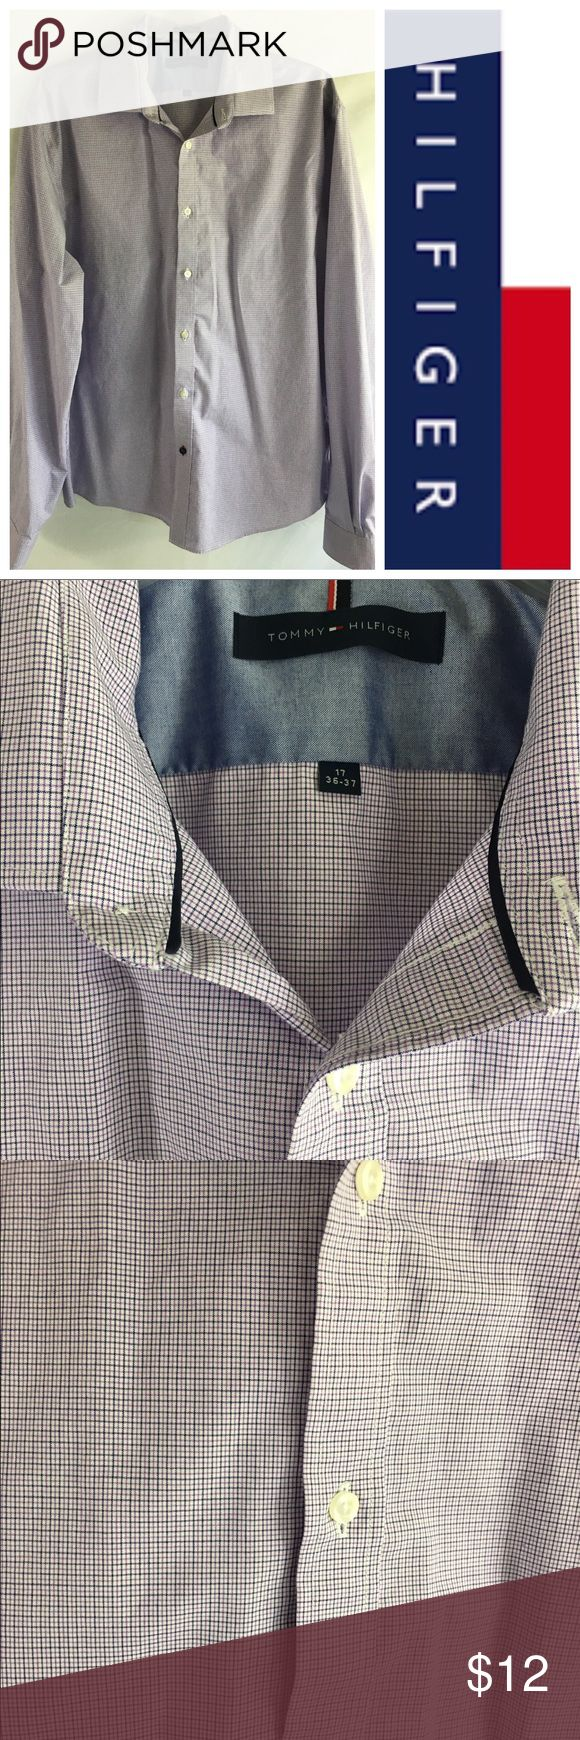 """Tommy Hilfiger Men's No Iron Slim Fit Dress Shirt Tommy Hilfiger Men's No Iron Slim Fit Dress Shirt. Purple and navy on white. Excellent condition - no sign of wear. 100% Cotton. Measurements:  neck 17"""" 36-37. Tommy Hilfiger Shirts Dress Shirts"""